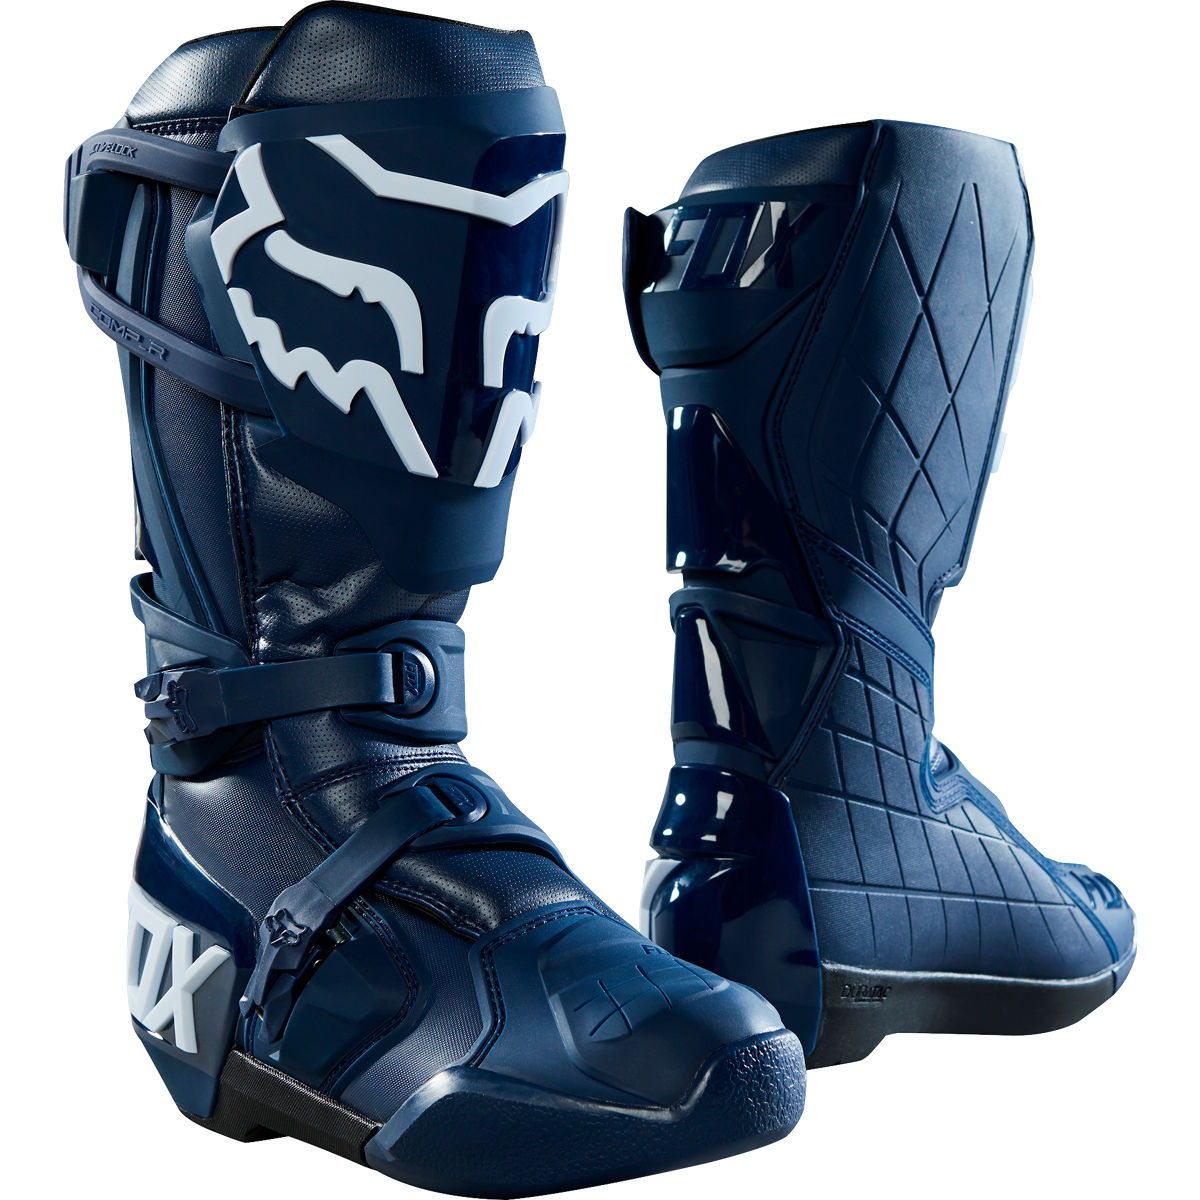 22882-007 Fox Racing Comp R Limited Edition Idol Boots Navy Bottes Motocross Marine Stiefel Offroad Blau Crosslaarzen Blauw